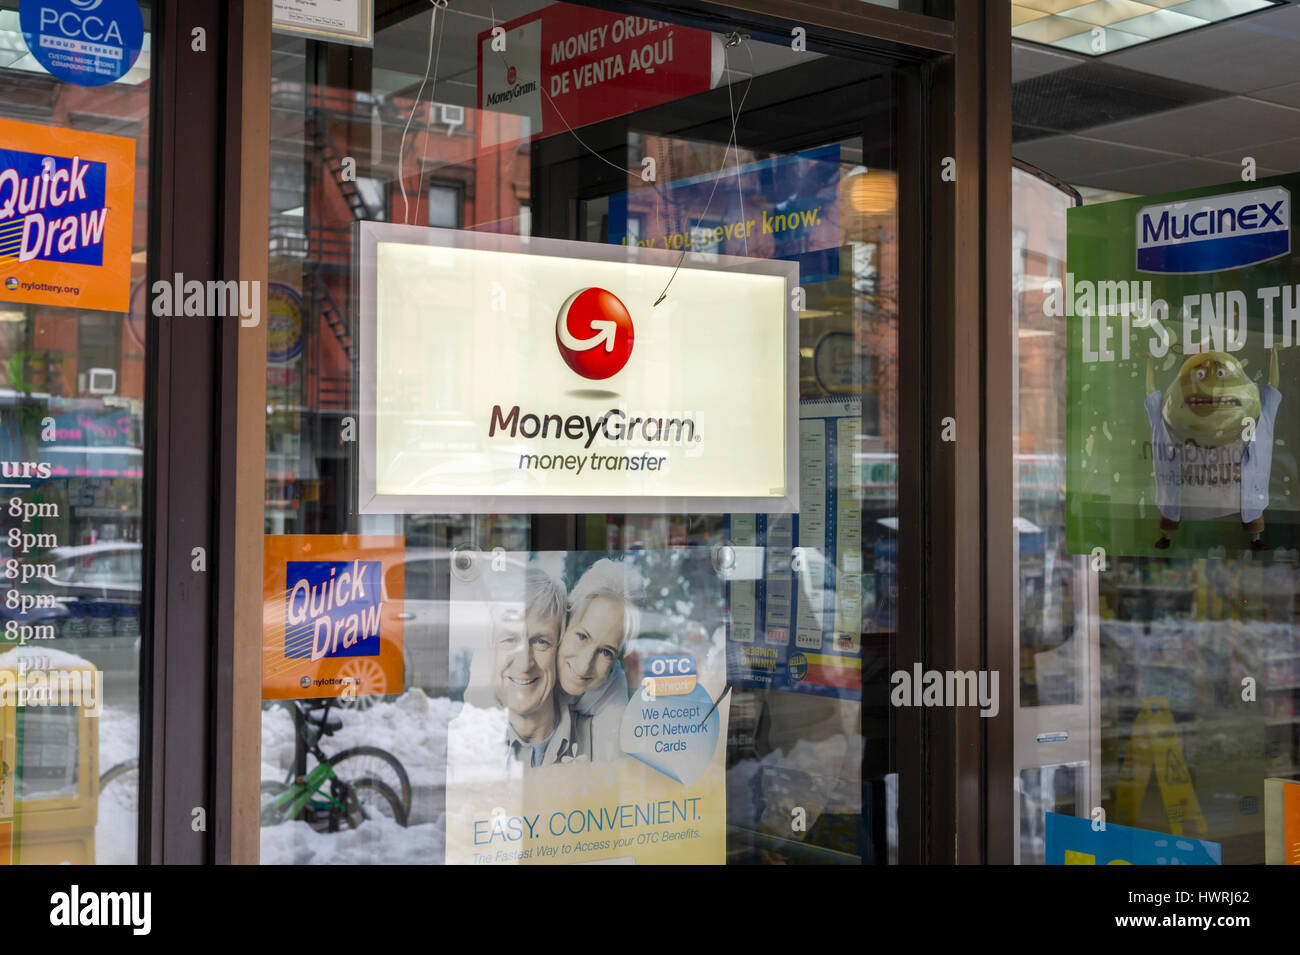 Remittance Stock Photos & Remittance Stock Images - Alamy